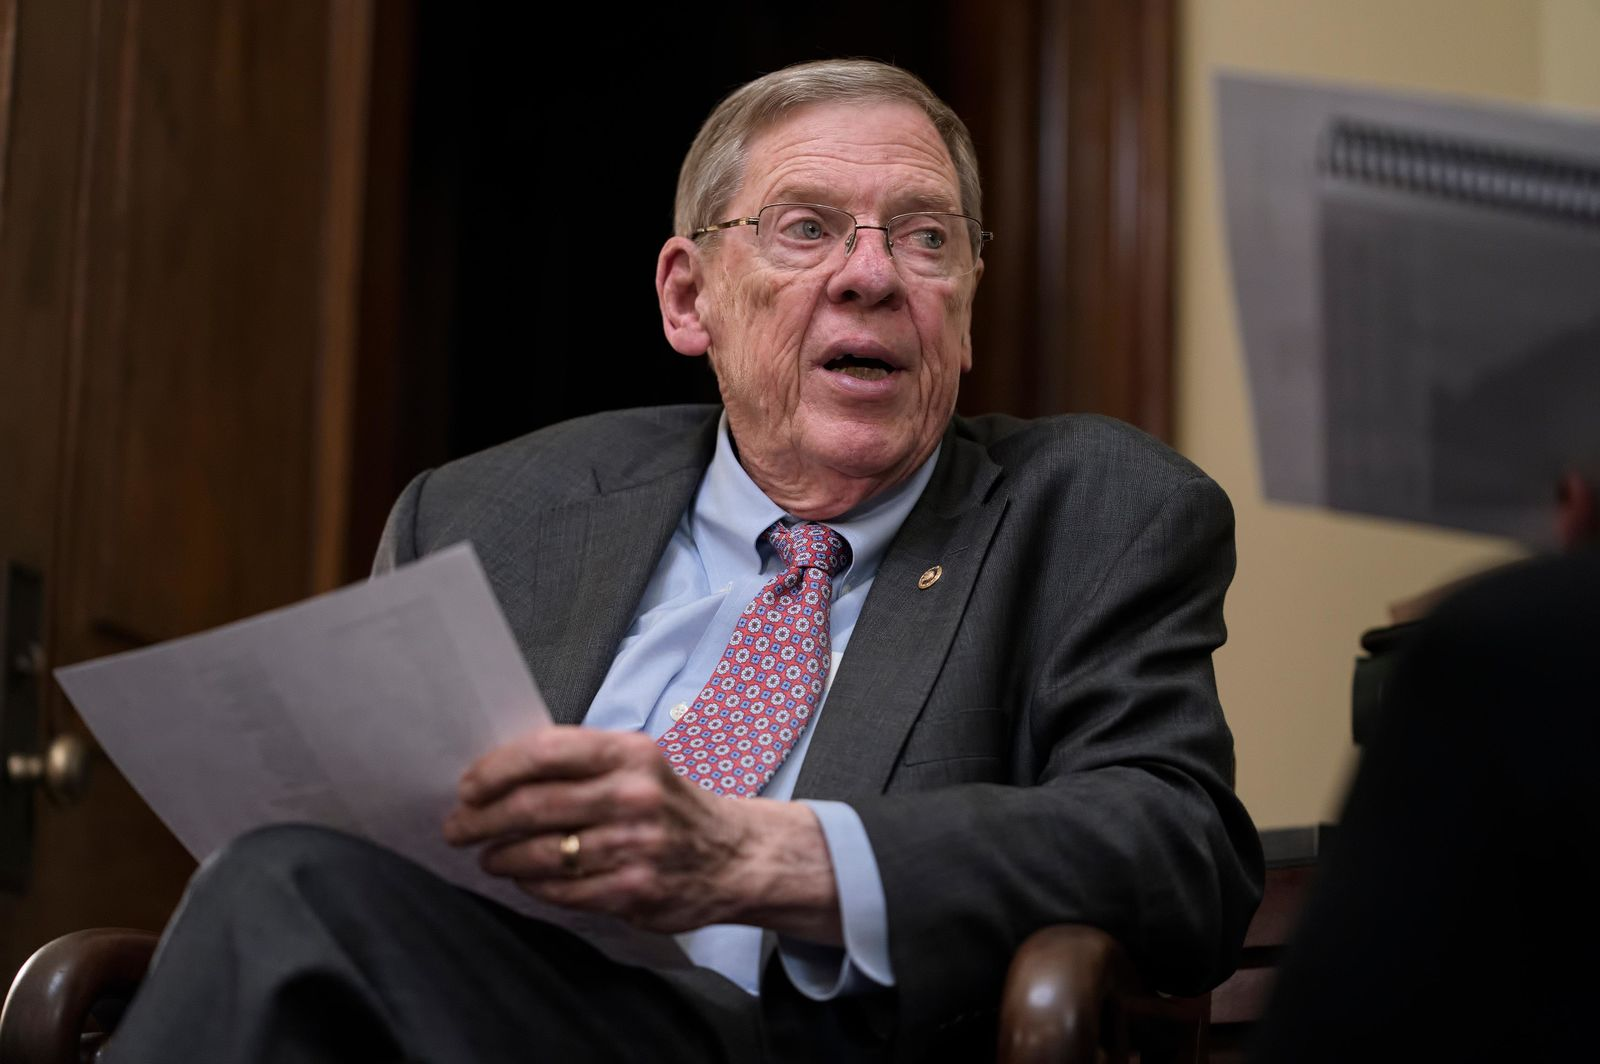 Sen. Johnny Isakson, R-Ga., meets with his staff in his office on Capitol Hill in Washington, Monday, Dec. 2, 2019, as he prepares to deliver his farewell address on the floor of the Senate tomorrow.{ } (AP Photo/J. Scott Applewhite)